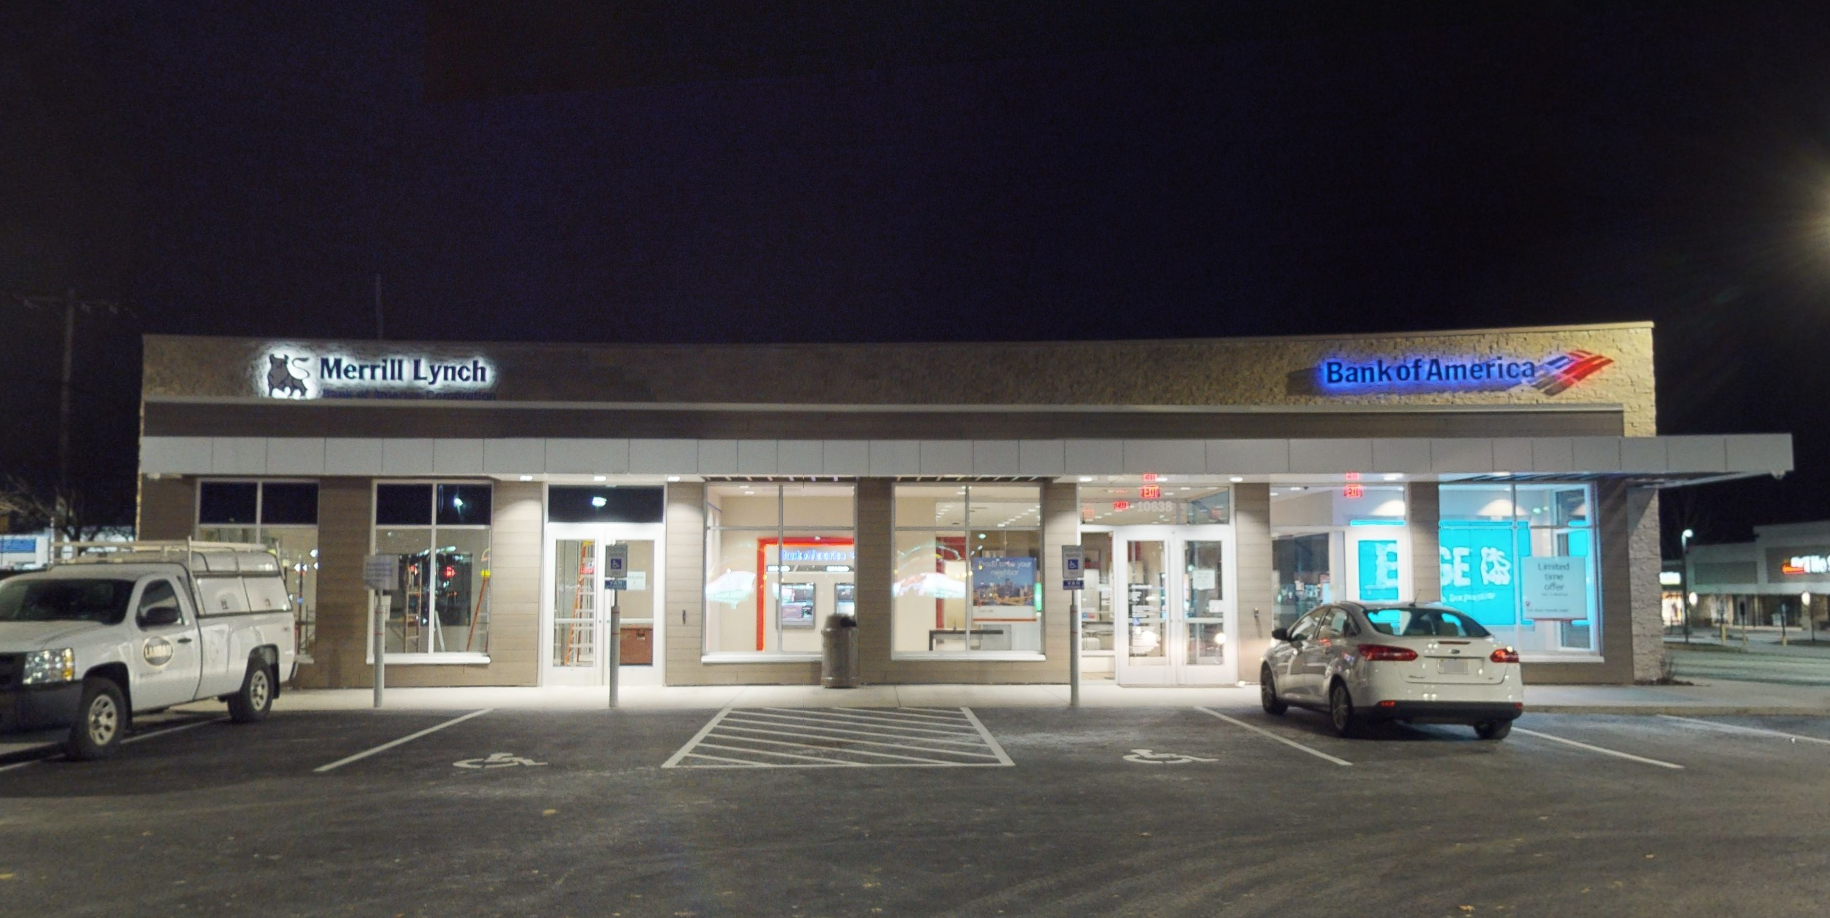 Bank of America financial center with drive-thru ATM | 10638 Perry Hwy, Wexford, PA 15090